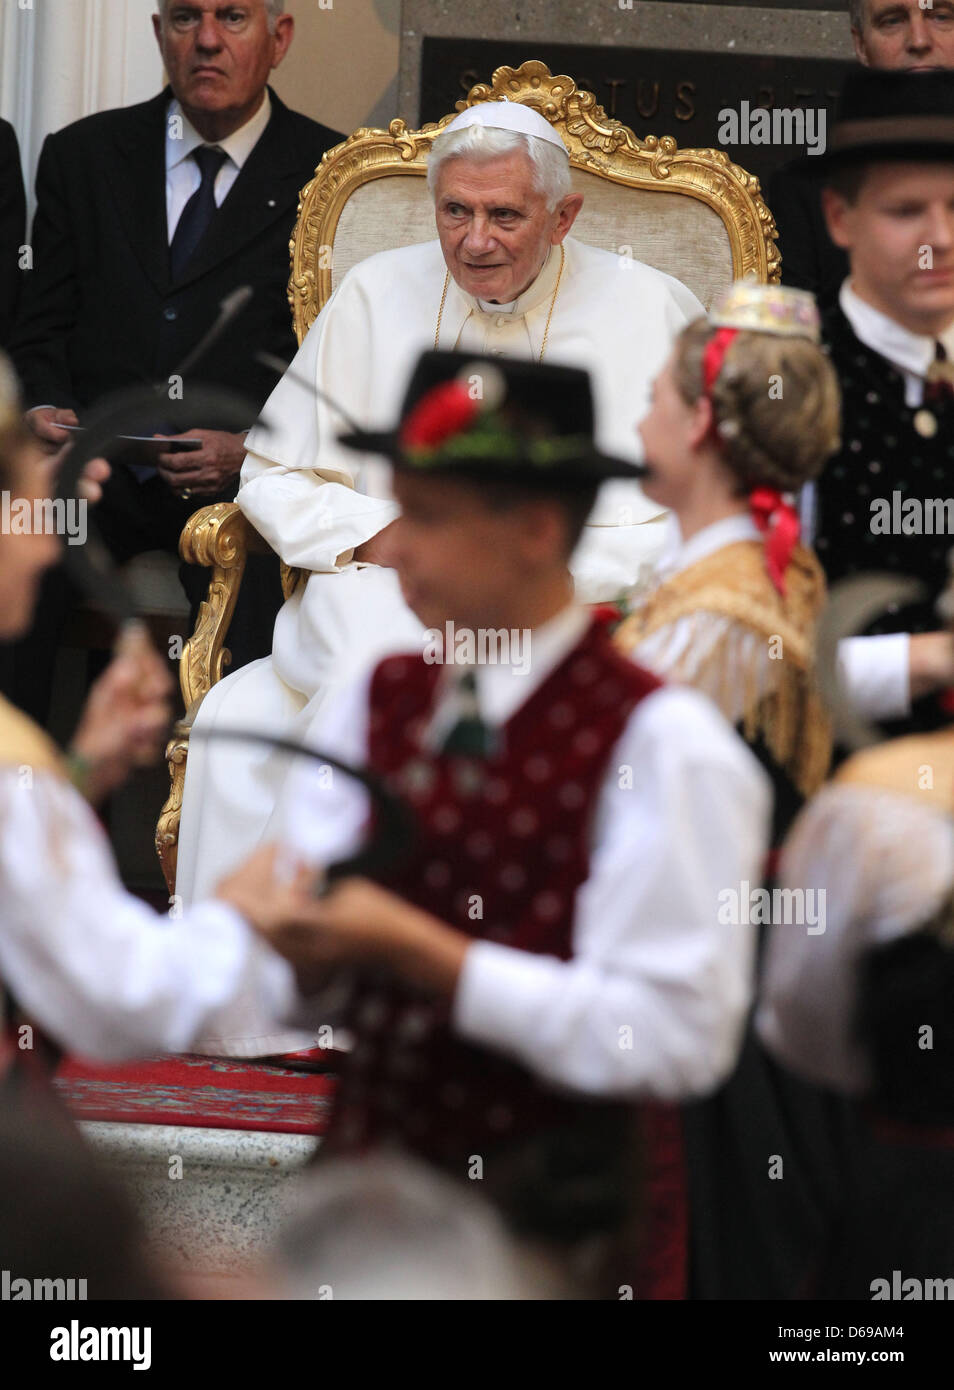 Bavarian pilkgrims wearing their traditional costumes perform a harvest dance for Pope Benedict XVI at the Papal - Stock Image